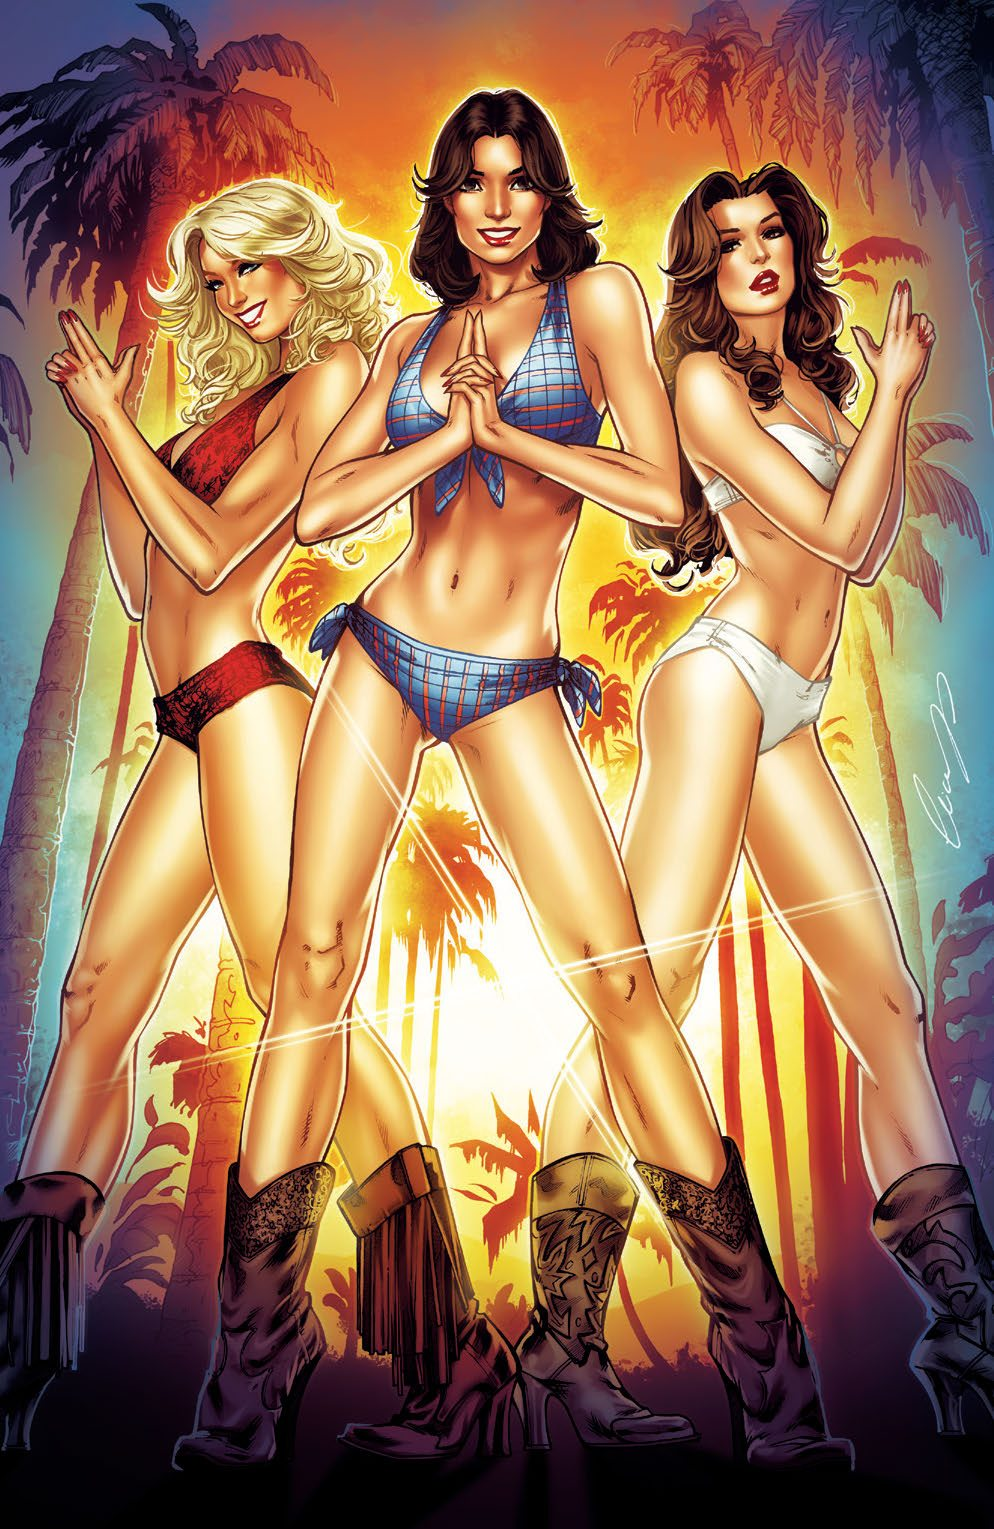 Charlie's Angels #1 Cover B Virgin